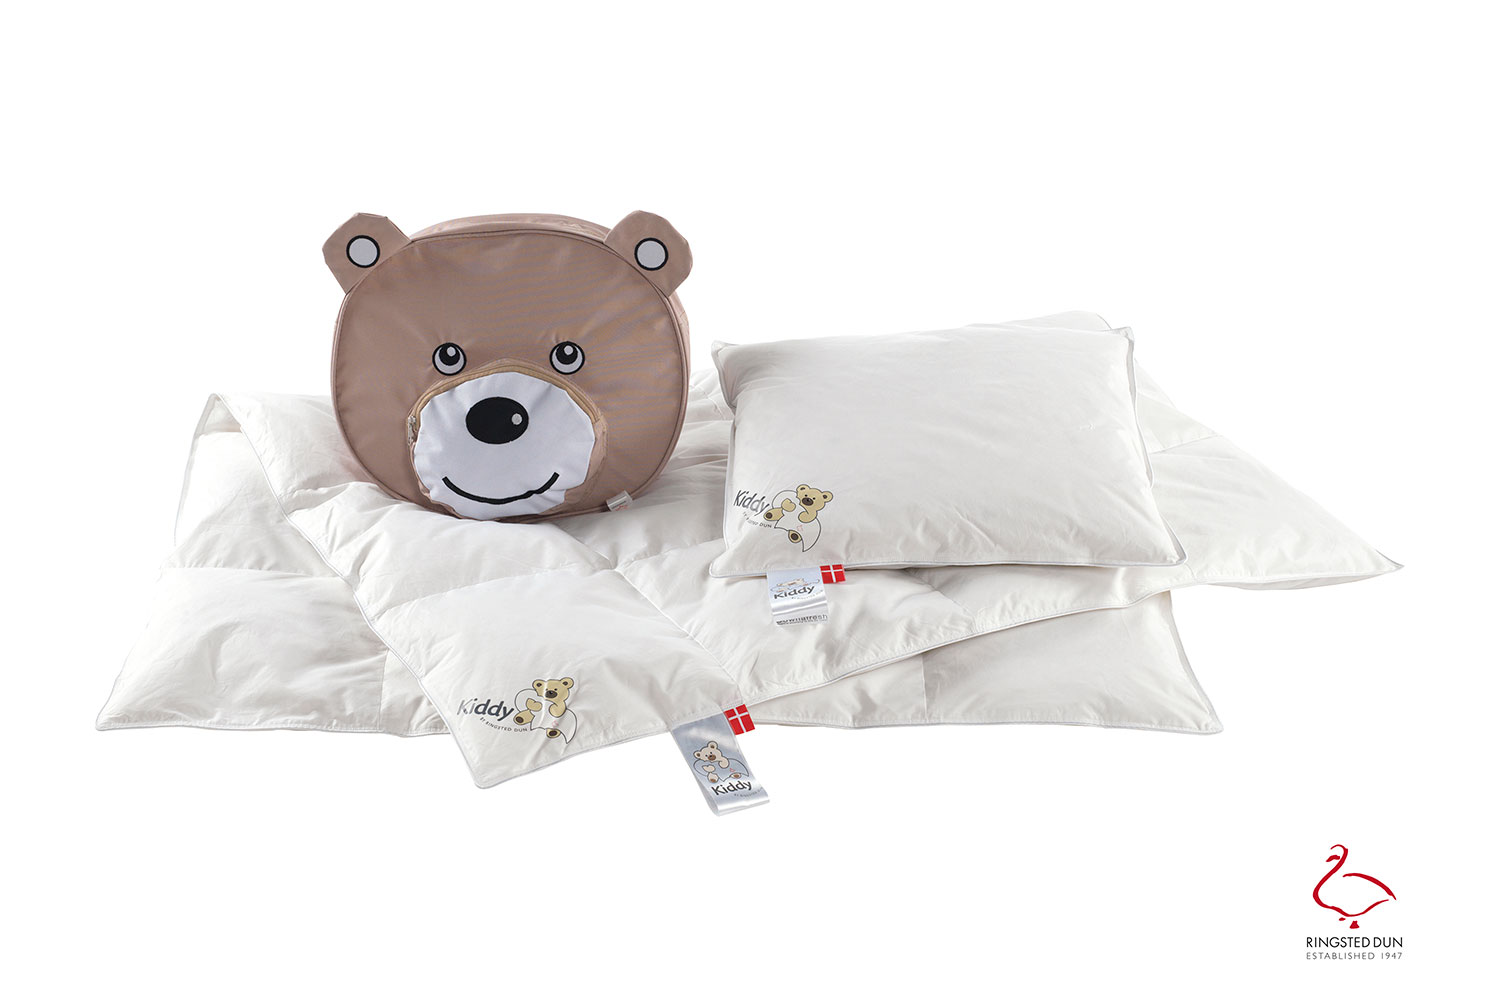 Ringsted Dun Kiddy junior duvets and pillows